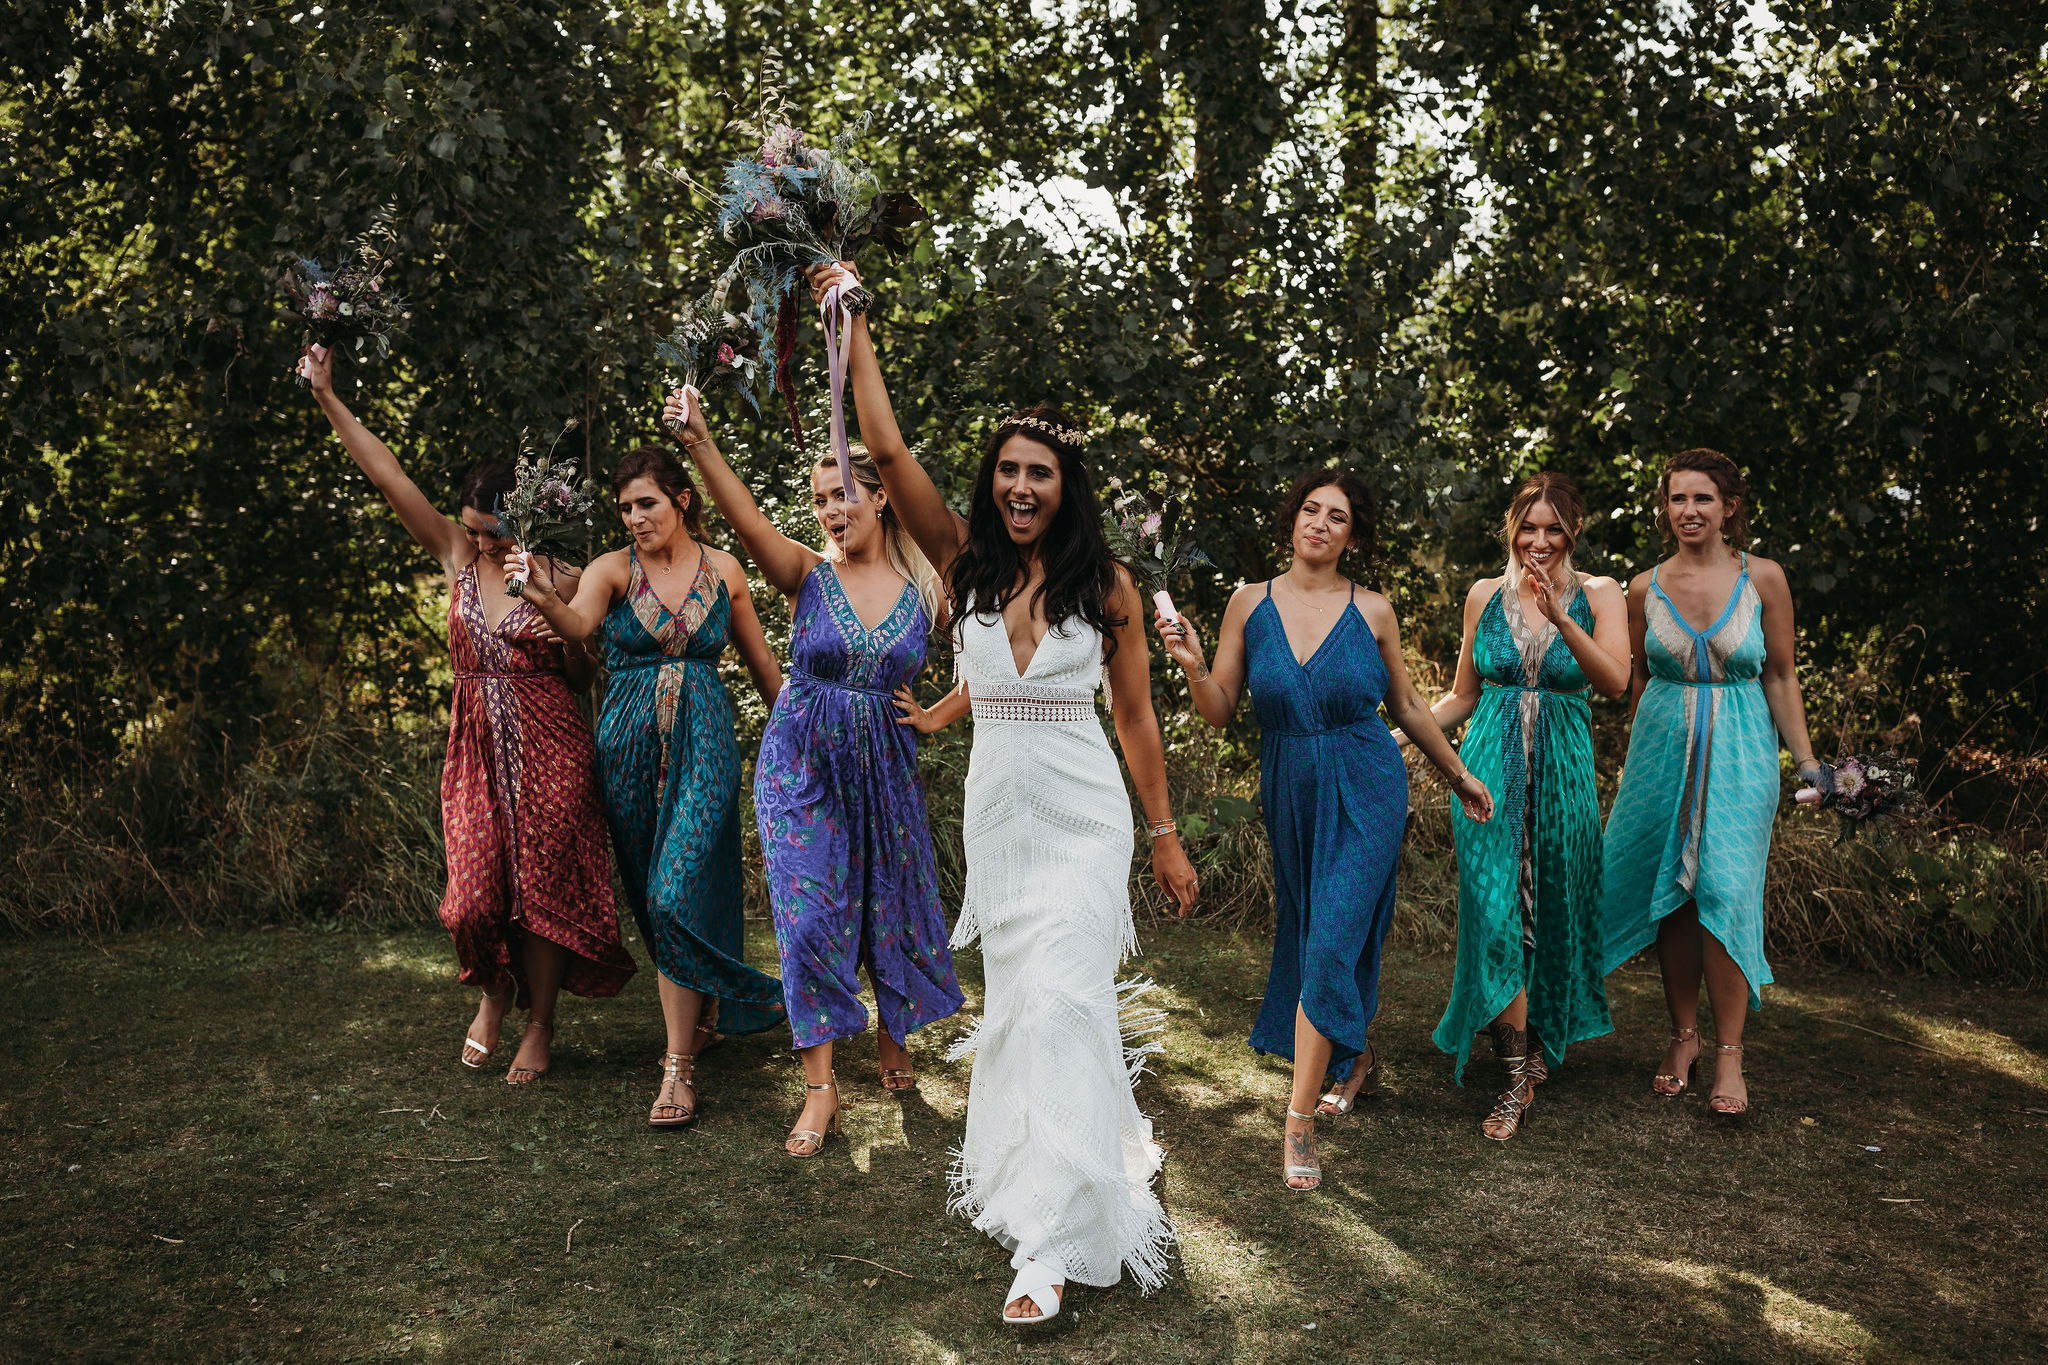 Bride celebrating with bridesmaids